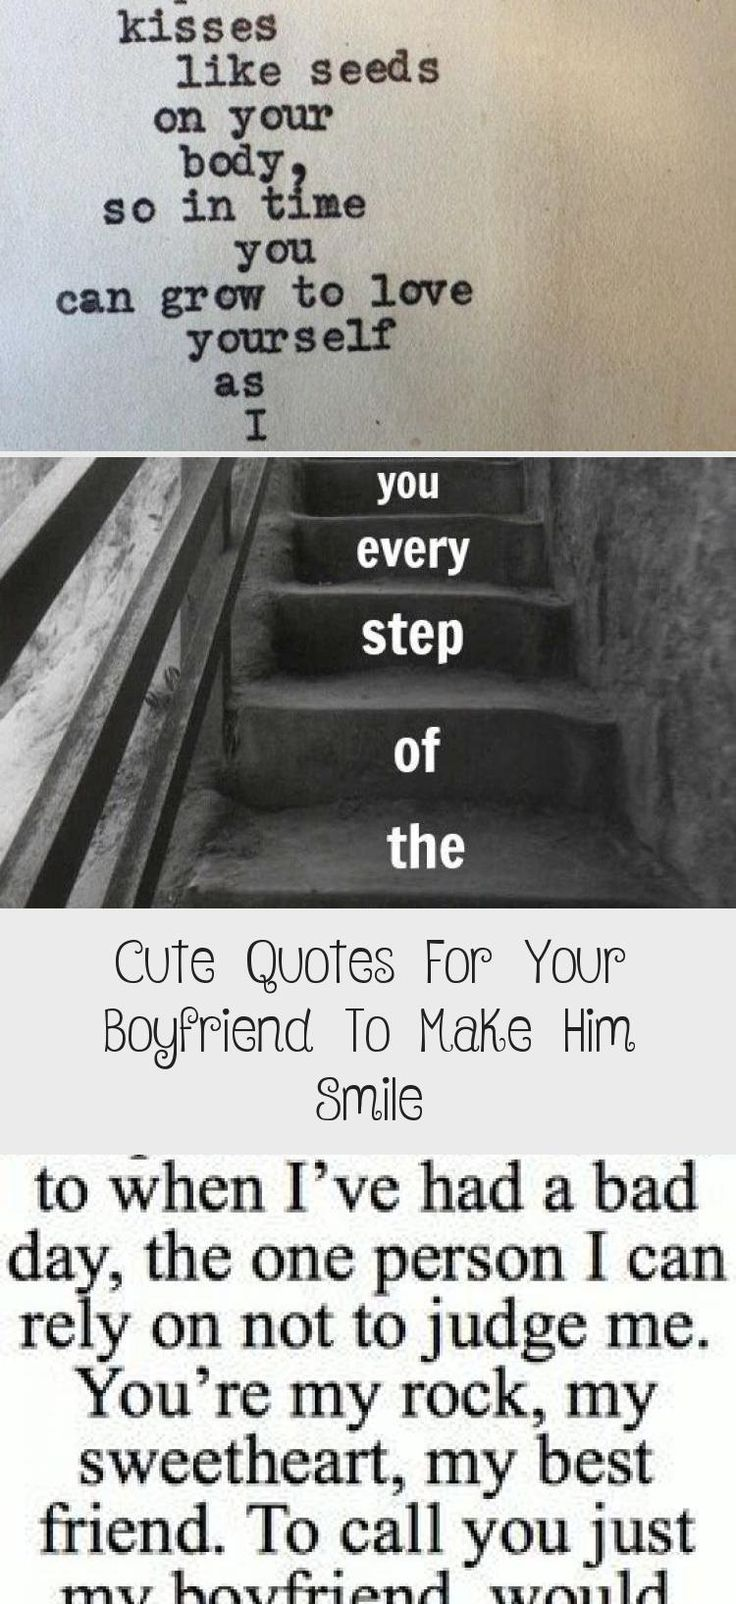 Cute quotes for your boyfriend to make him smile cute